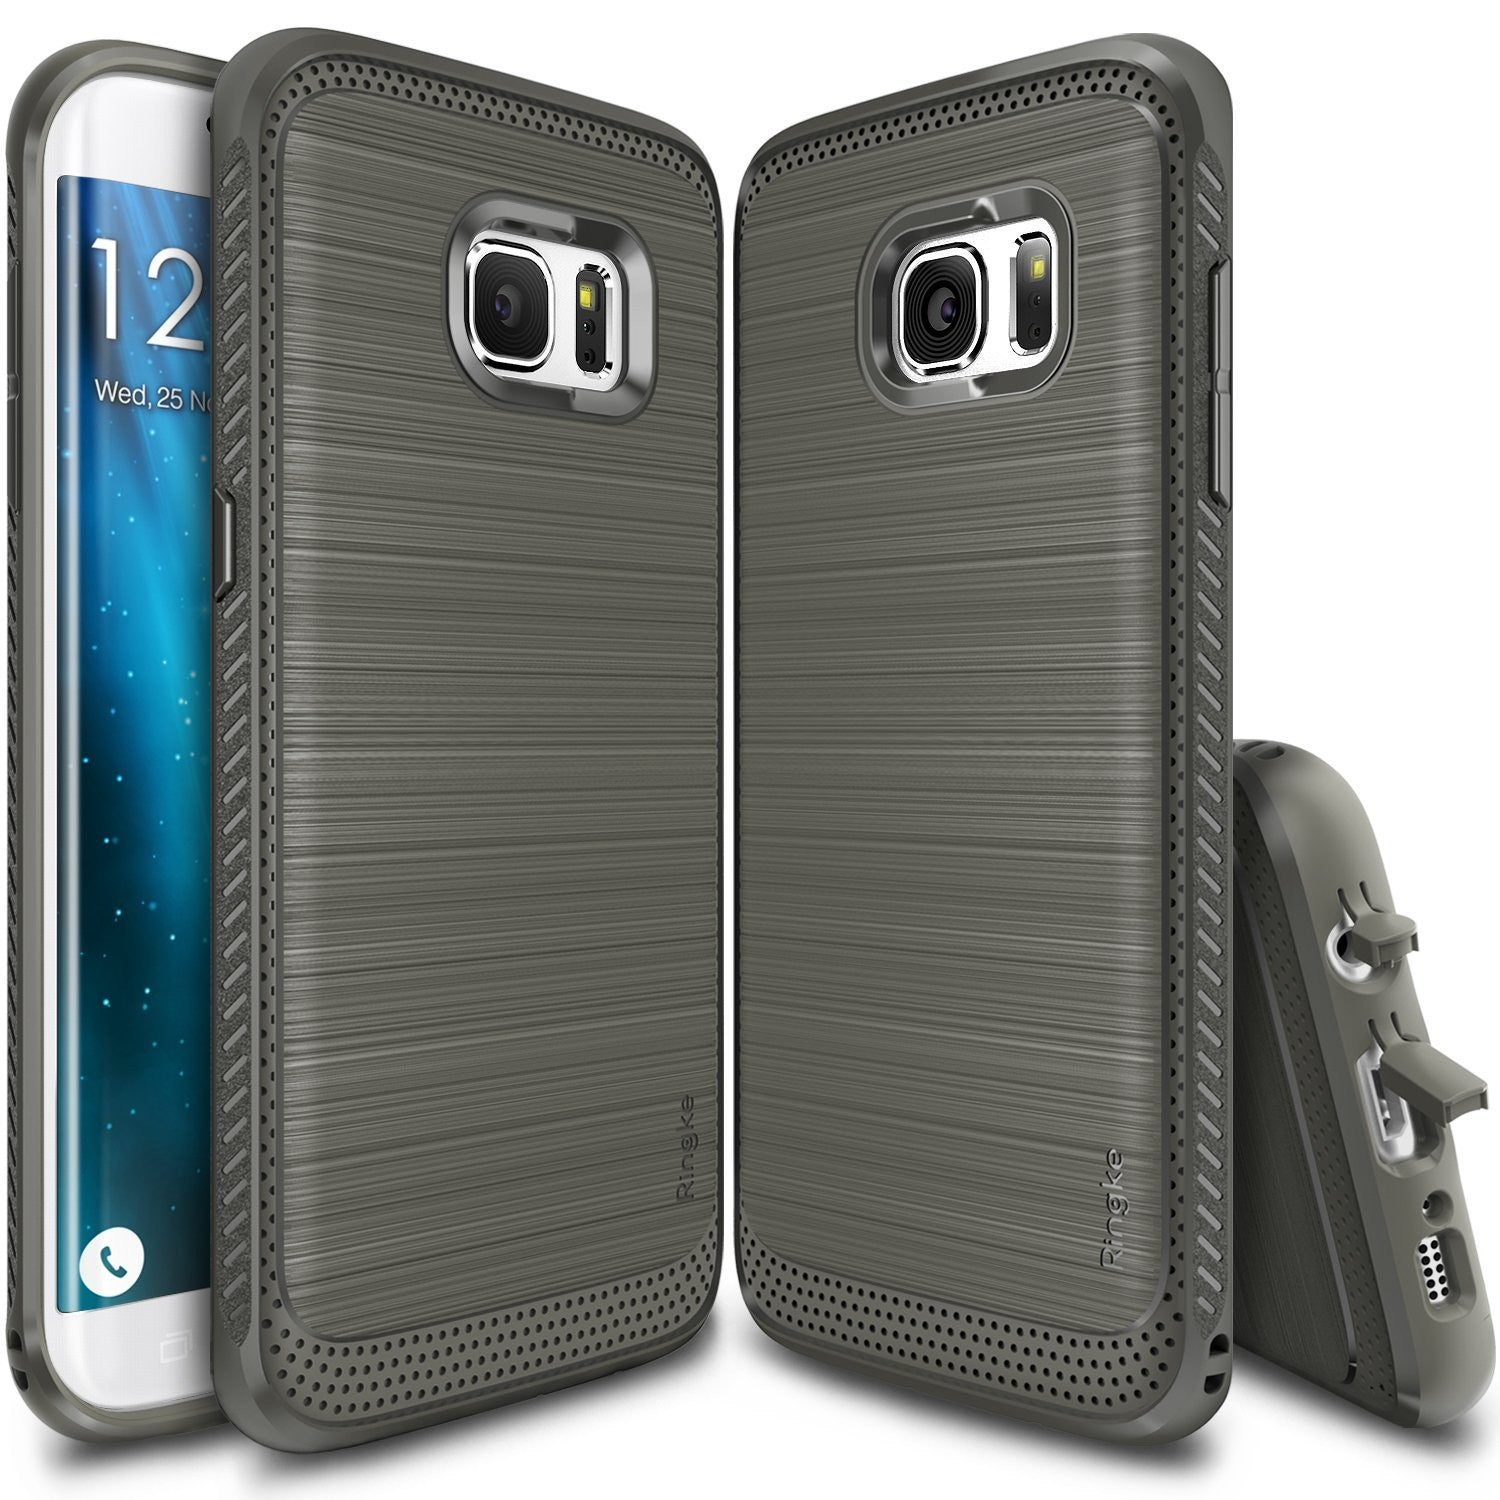 ringke onyx rugged flexible tpu shockproof cover case for galaxy s7 edge mist gray